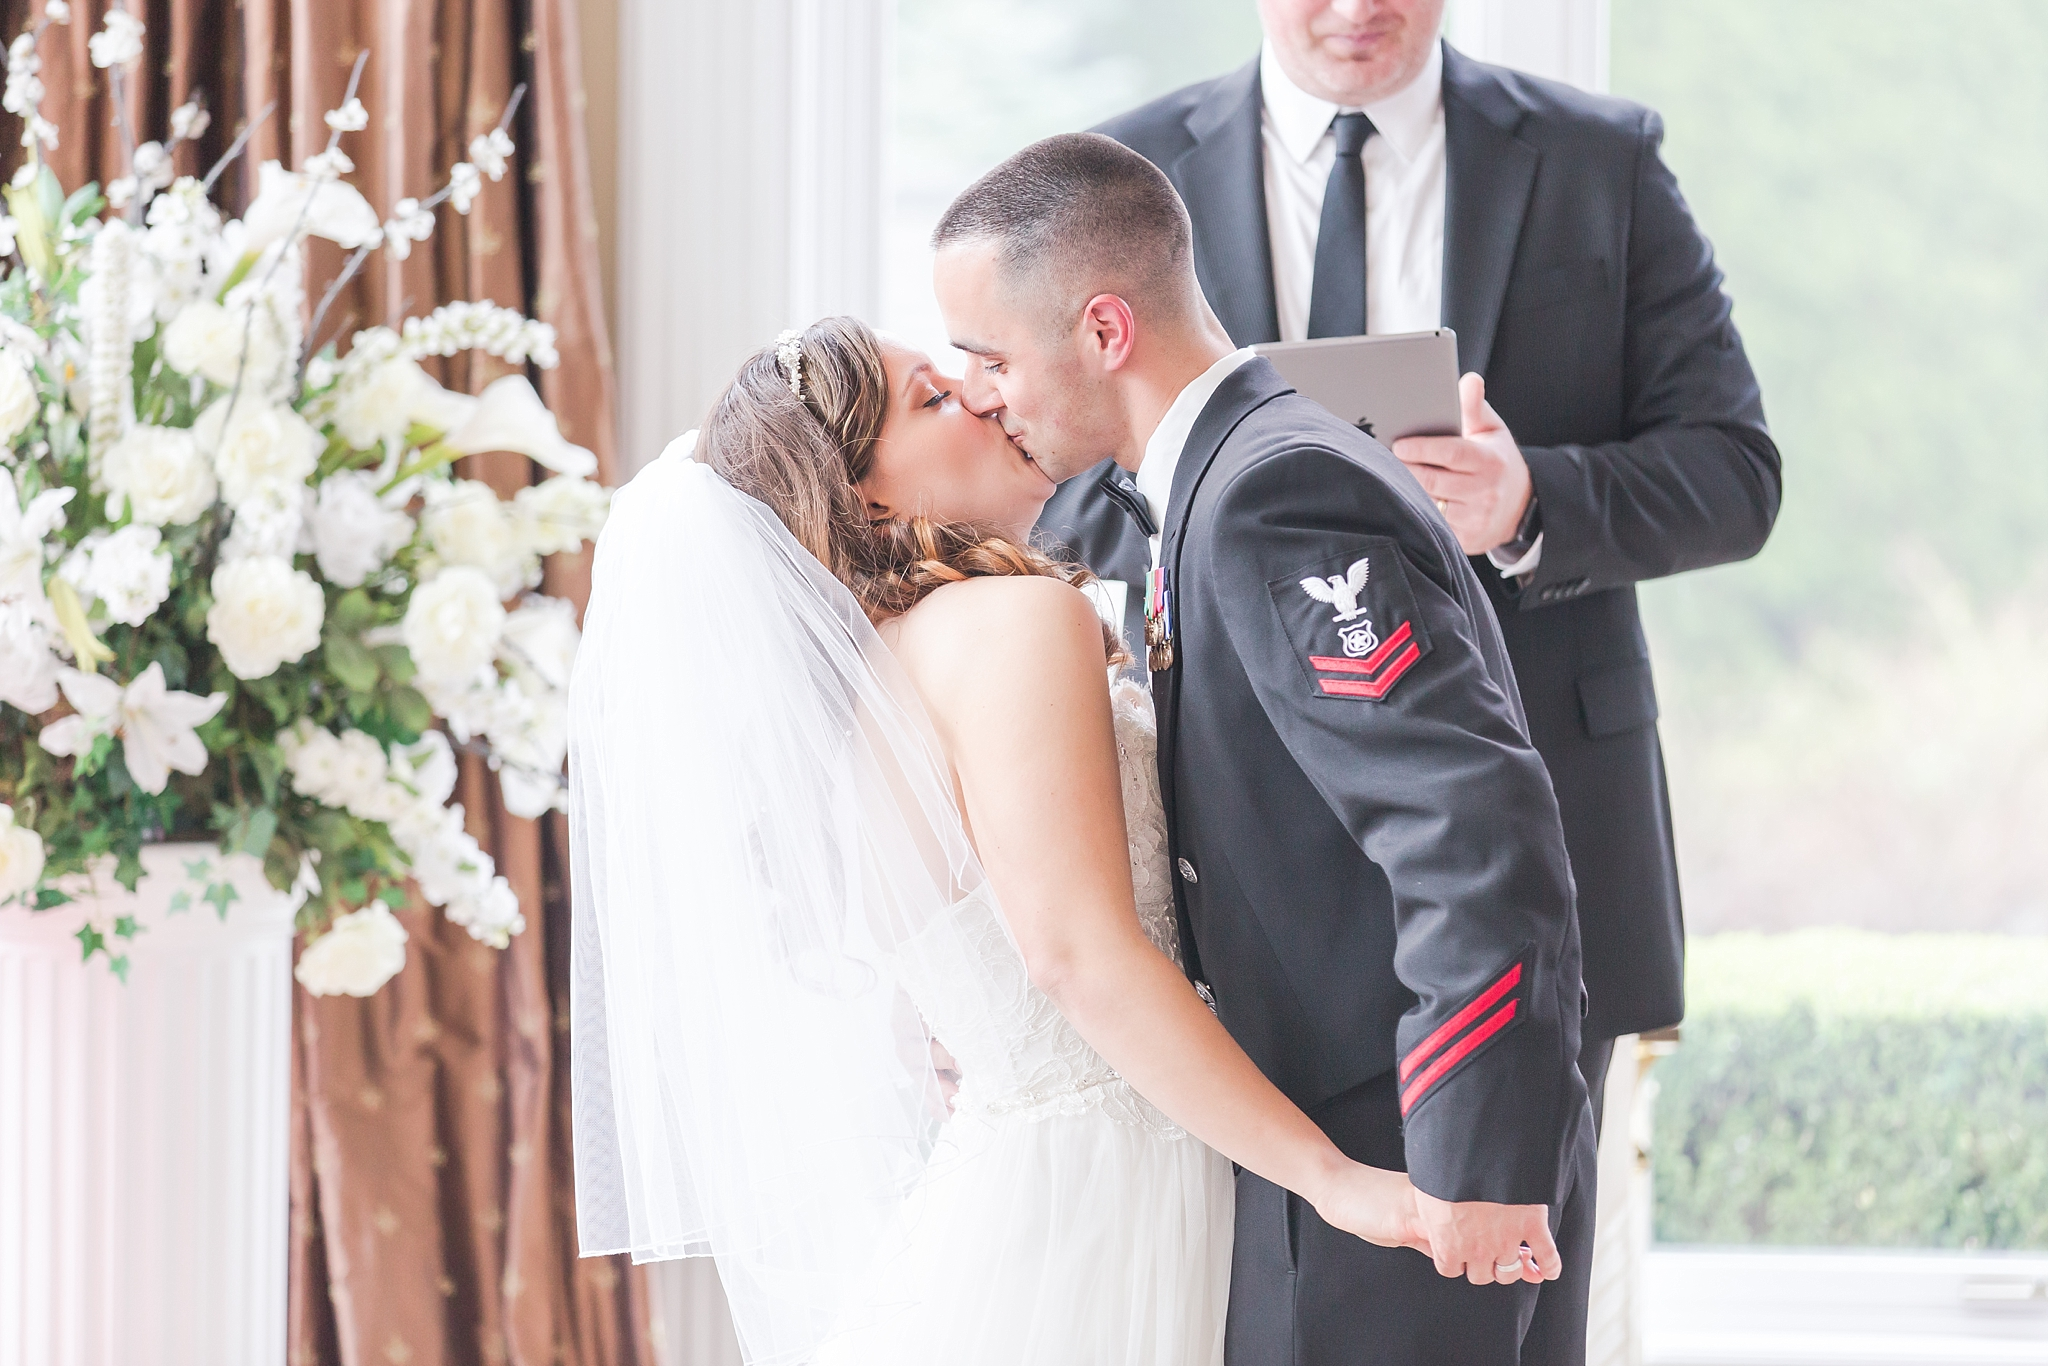 romantic-artful-candid-wedding-photos-in-st-clair-shores-at-the-white-house-wedding-chapel-by-courtney-carolyn-photography_0033.jpg